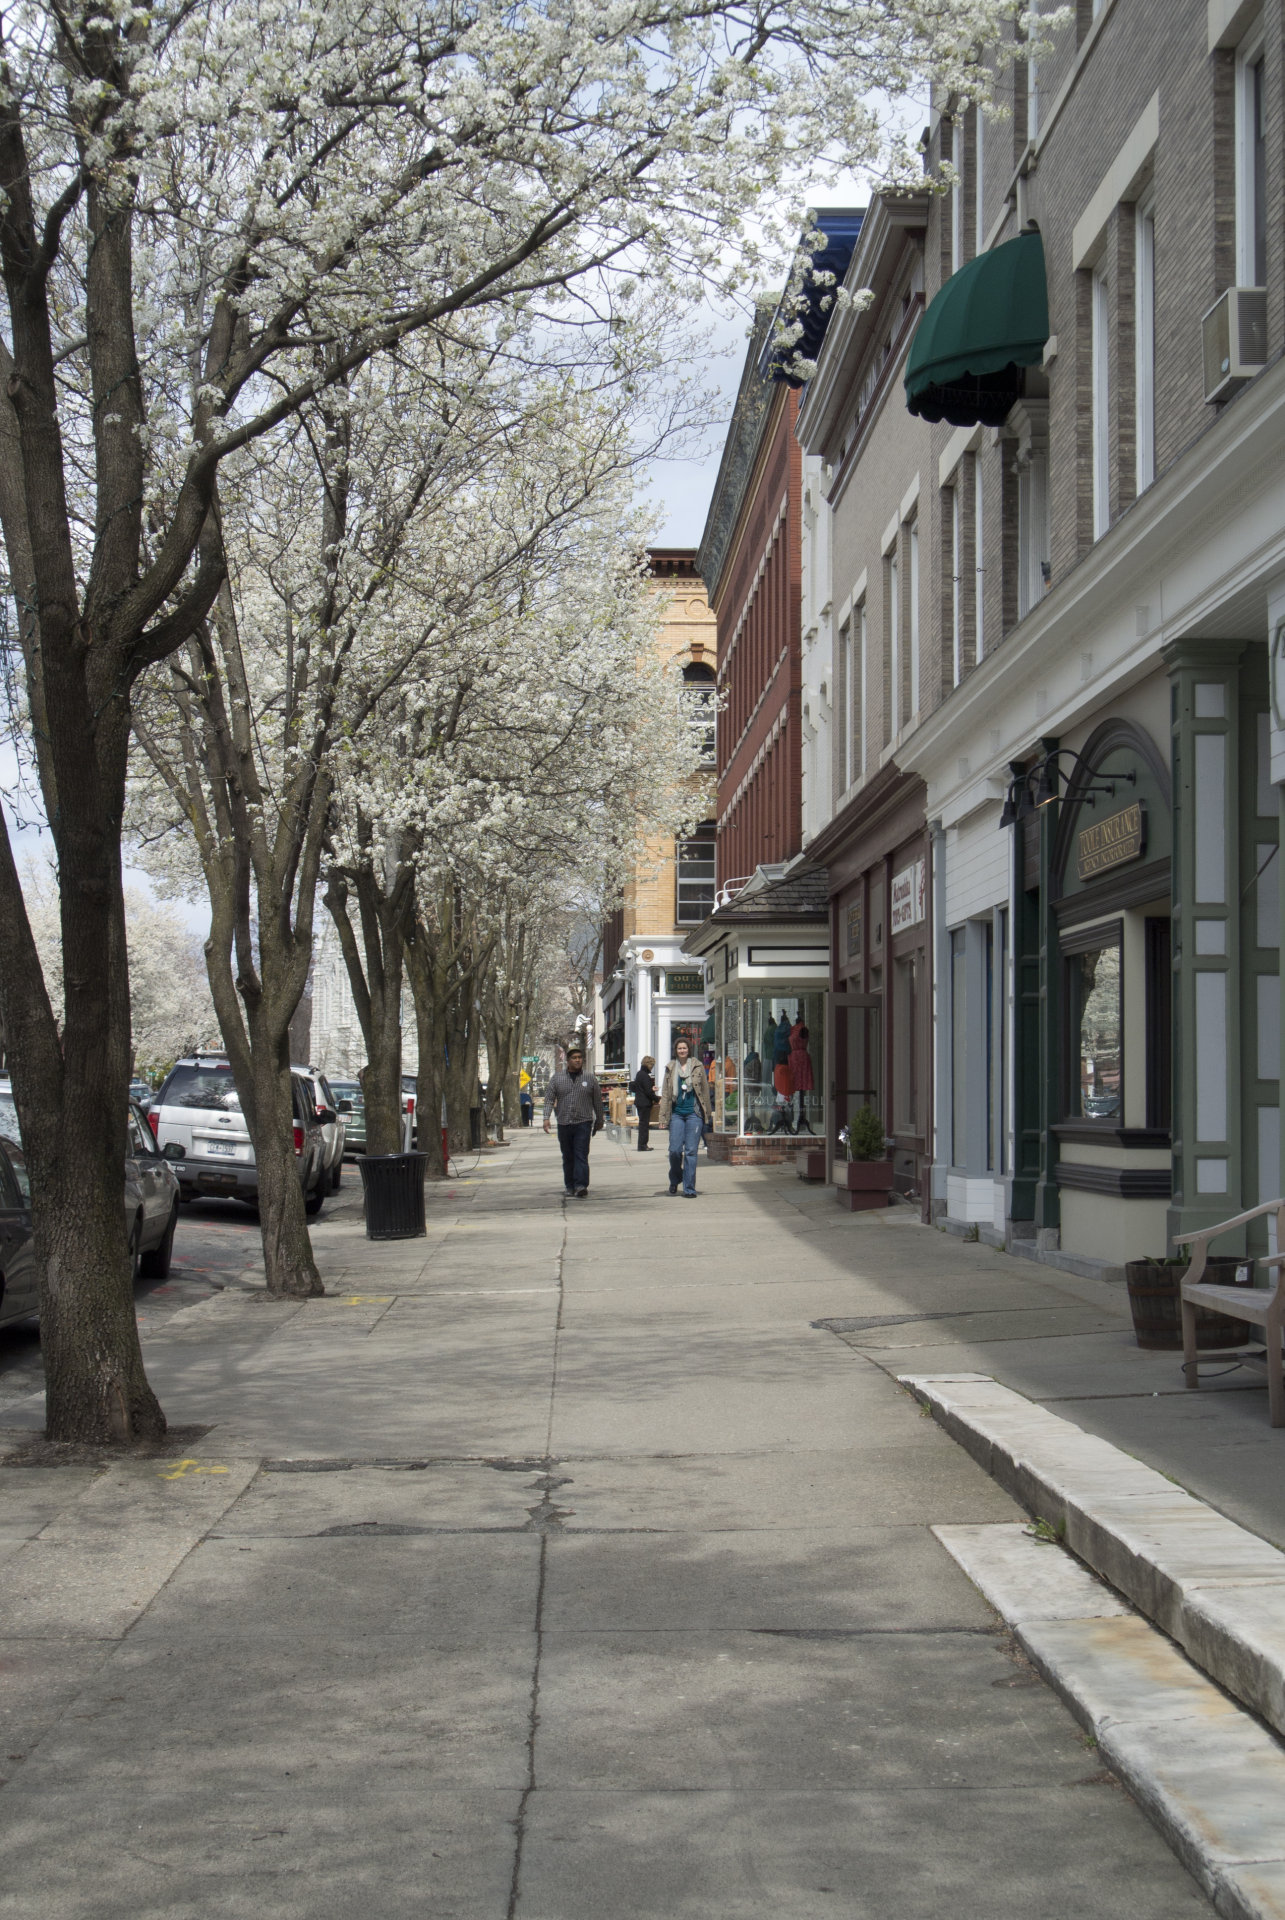 East side of Main Street, Great Barrington